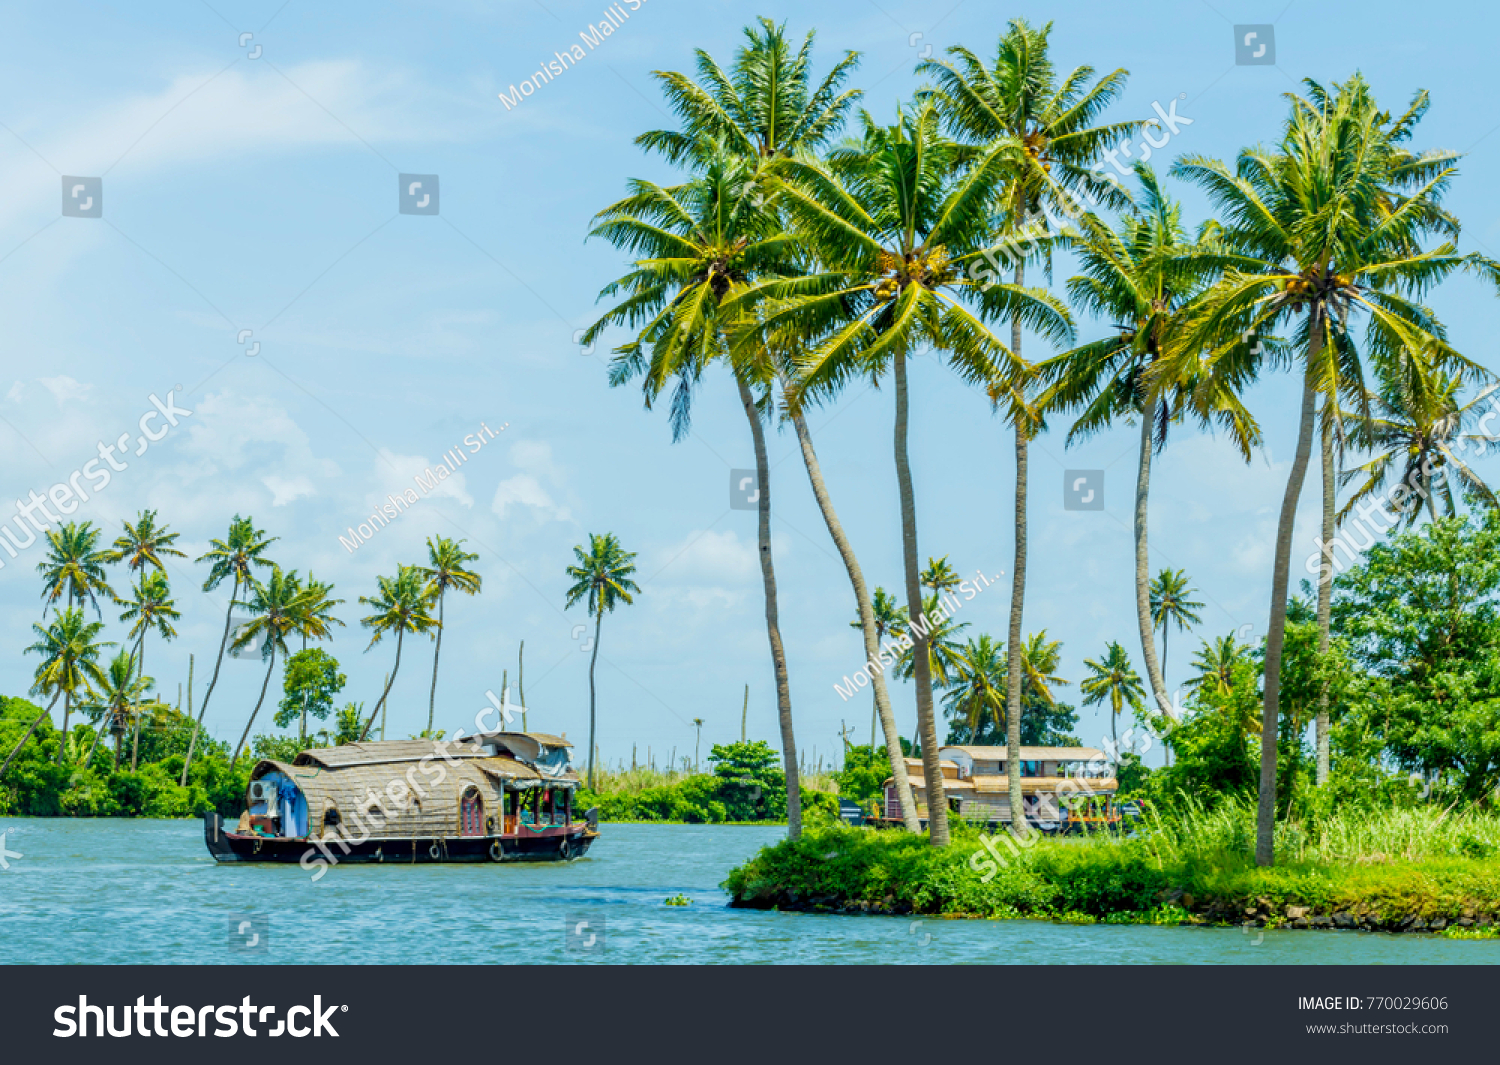 Houseboat on Kerala backwaters, in Alleppey, Kerala, India #770029606